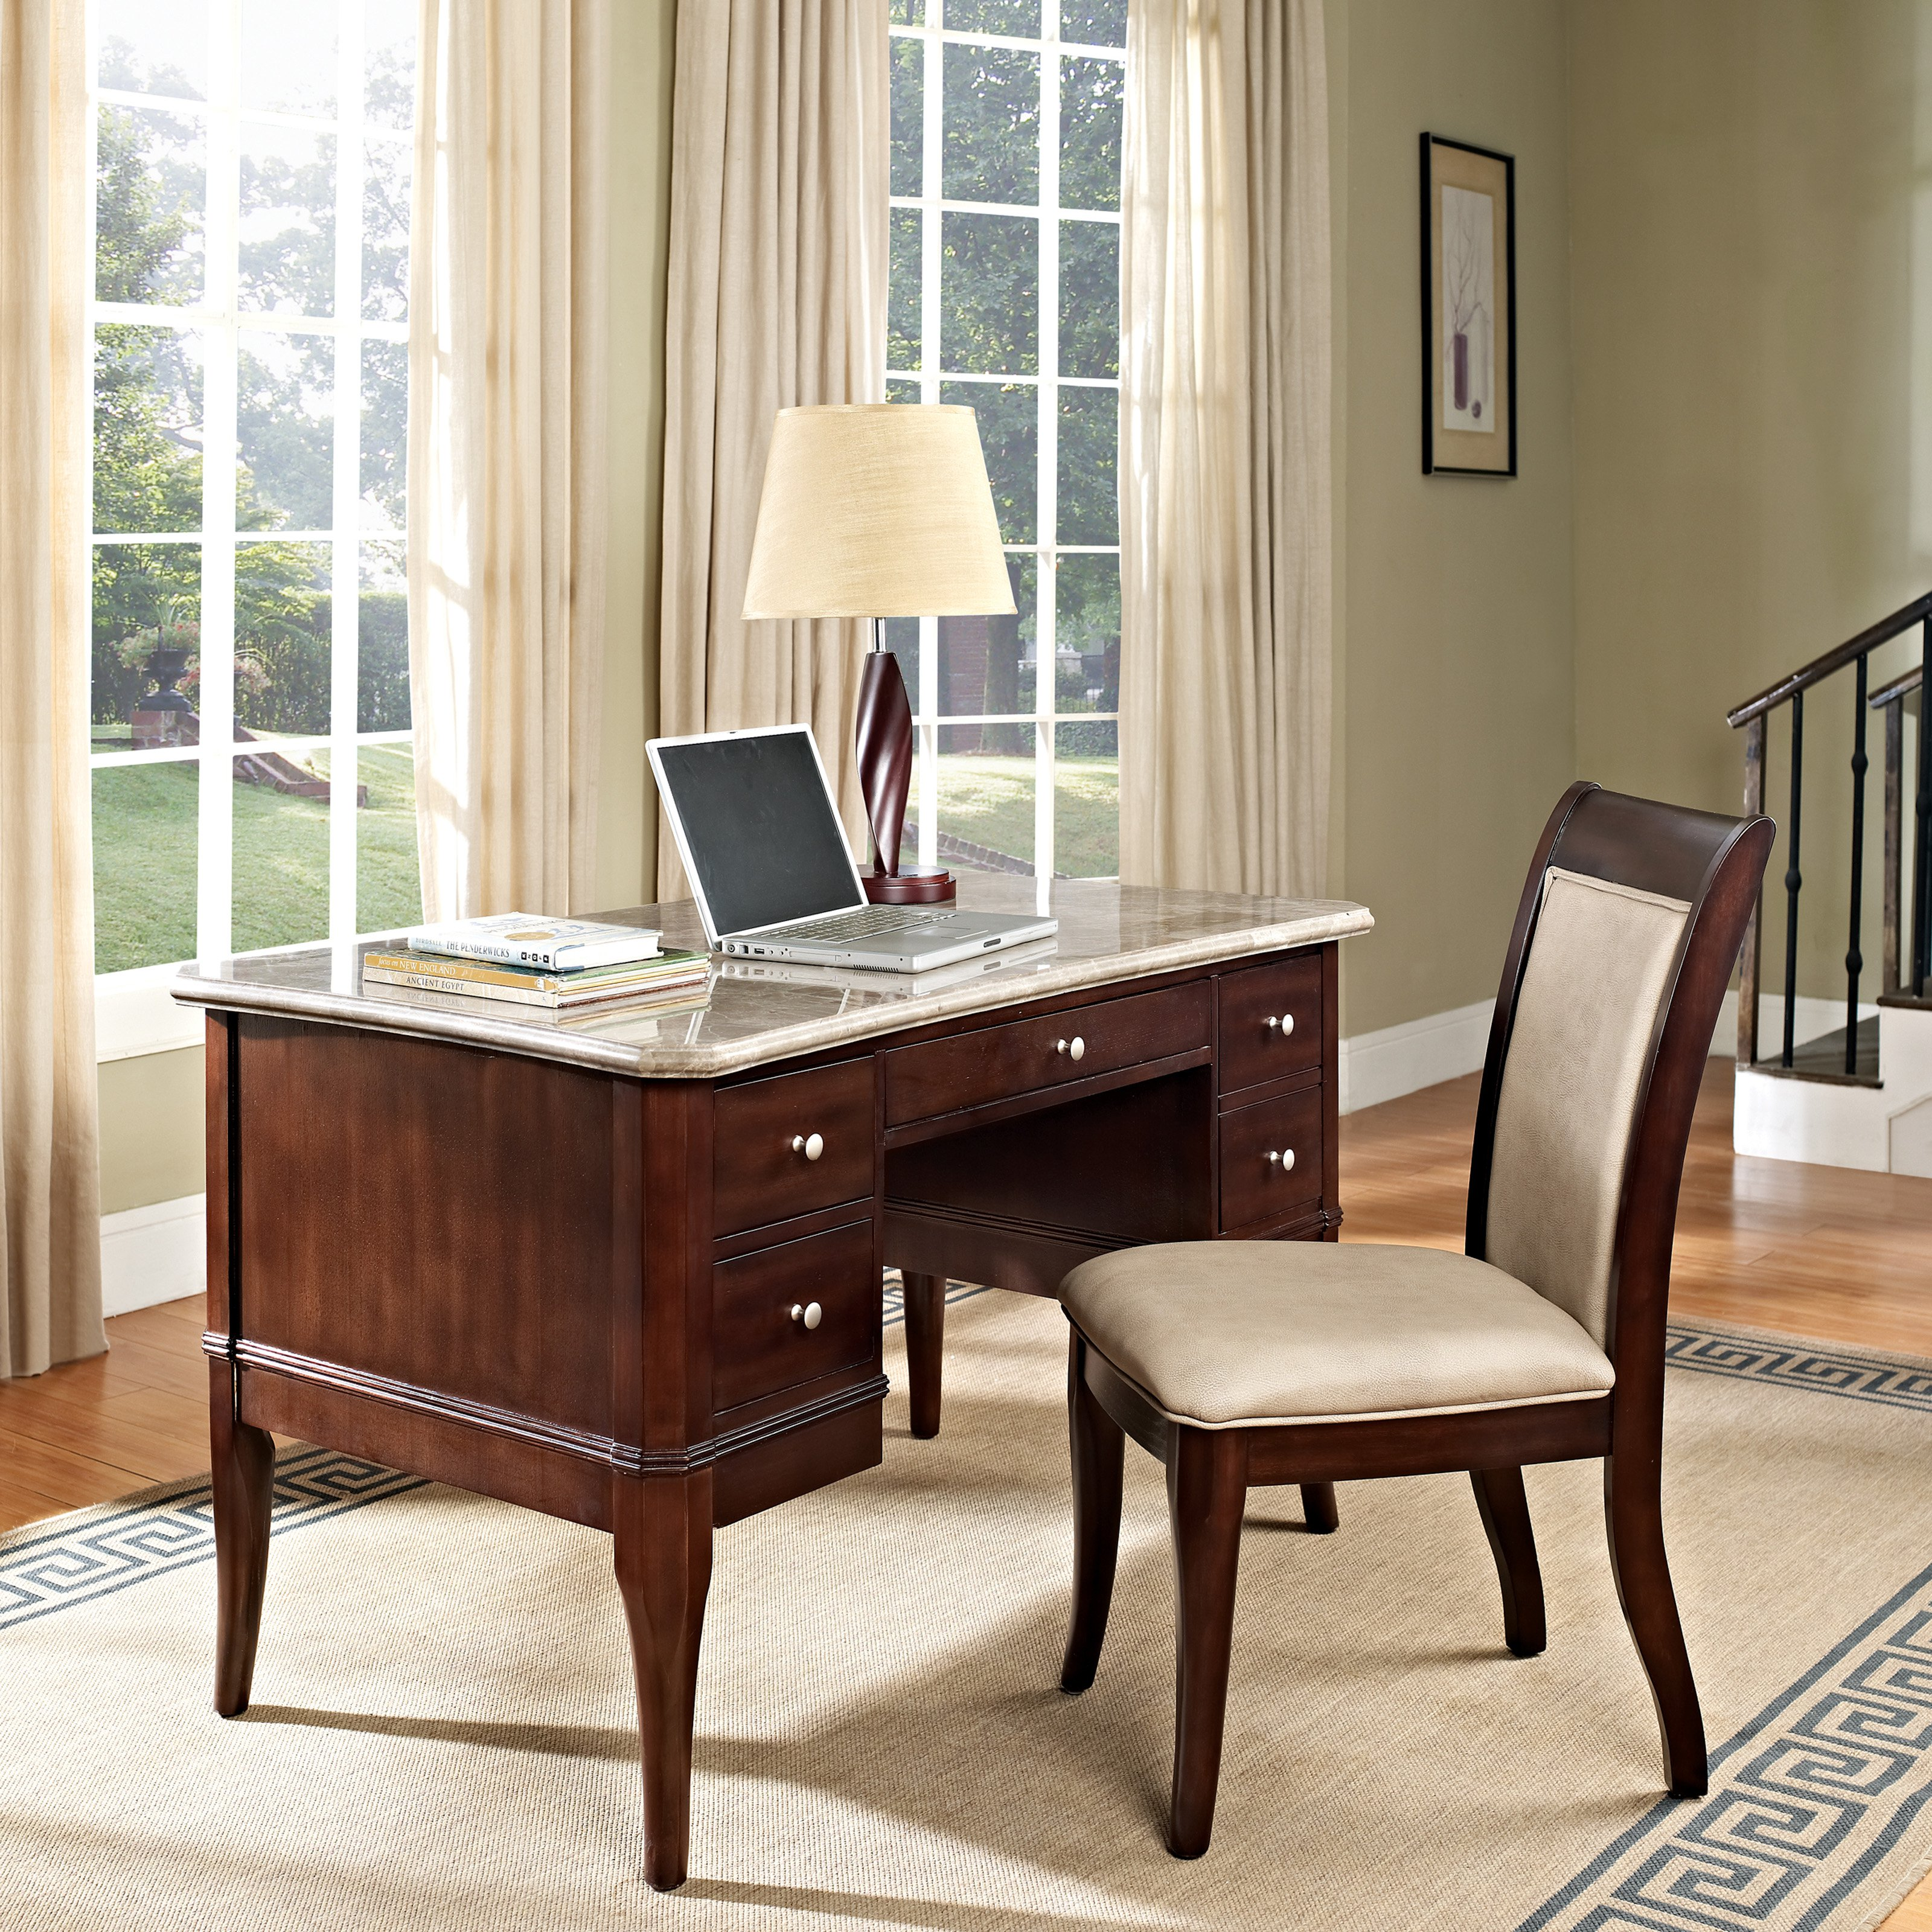 Steve Silver Marseille Marble Top Writing Desk with Optional Chair - Desk Only